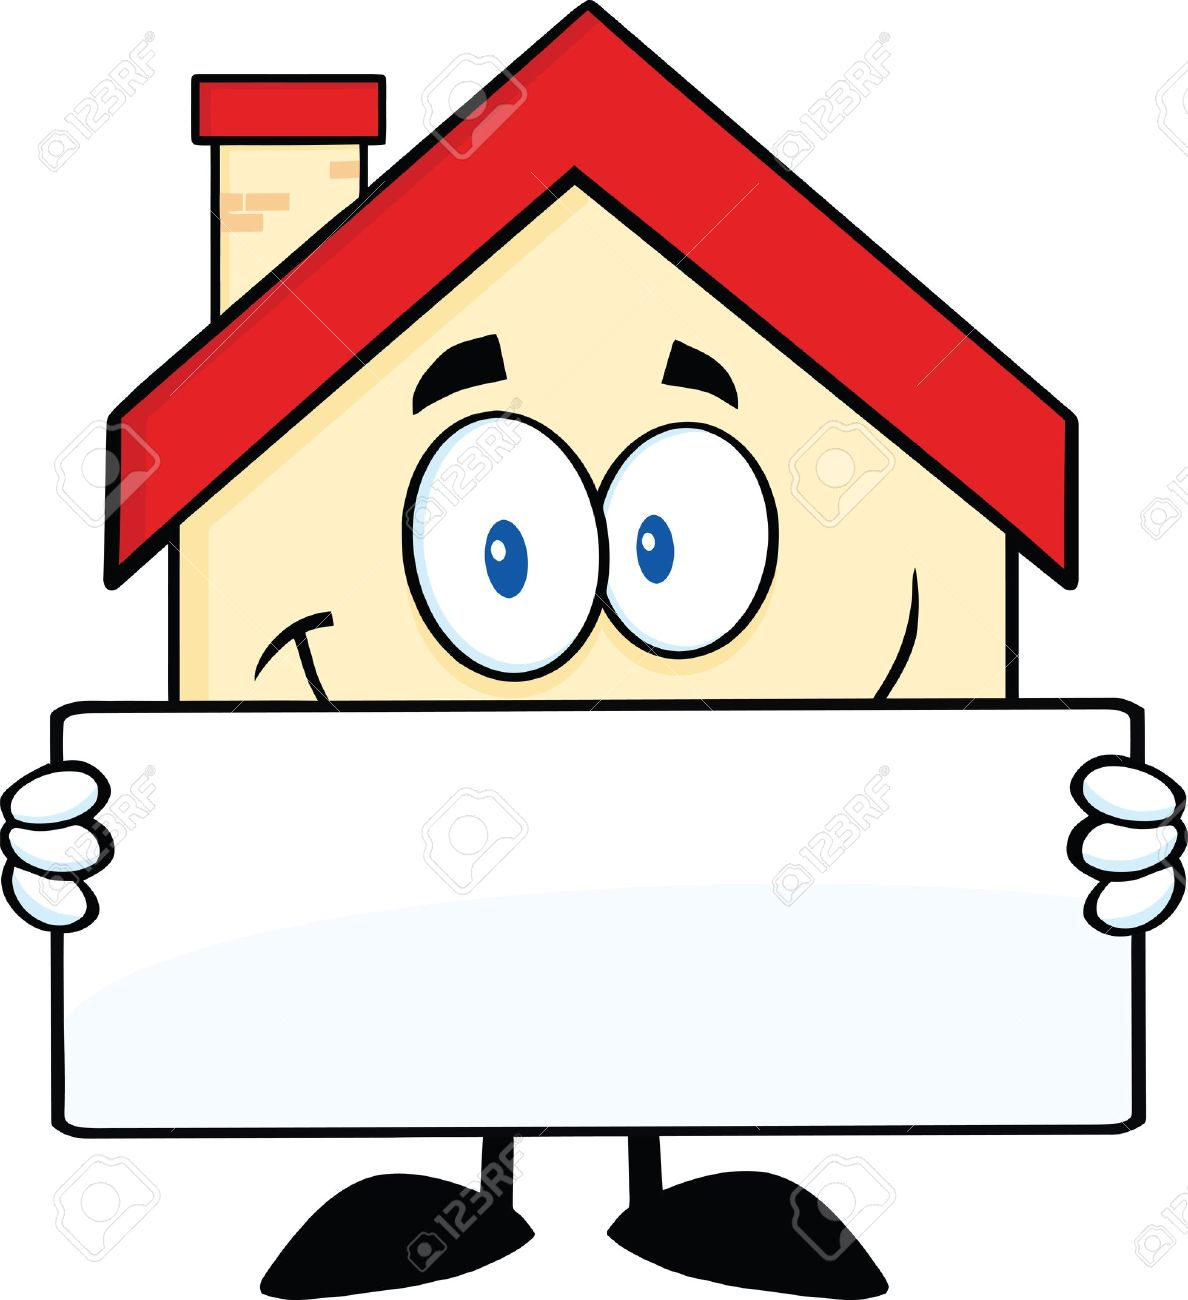 Smiling House Cartoon Mascot Character Holding A Banner Royalty ...